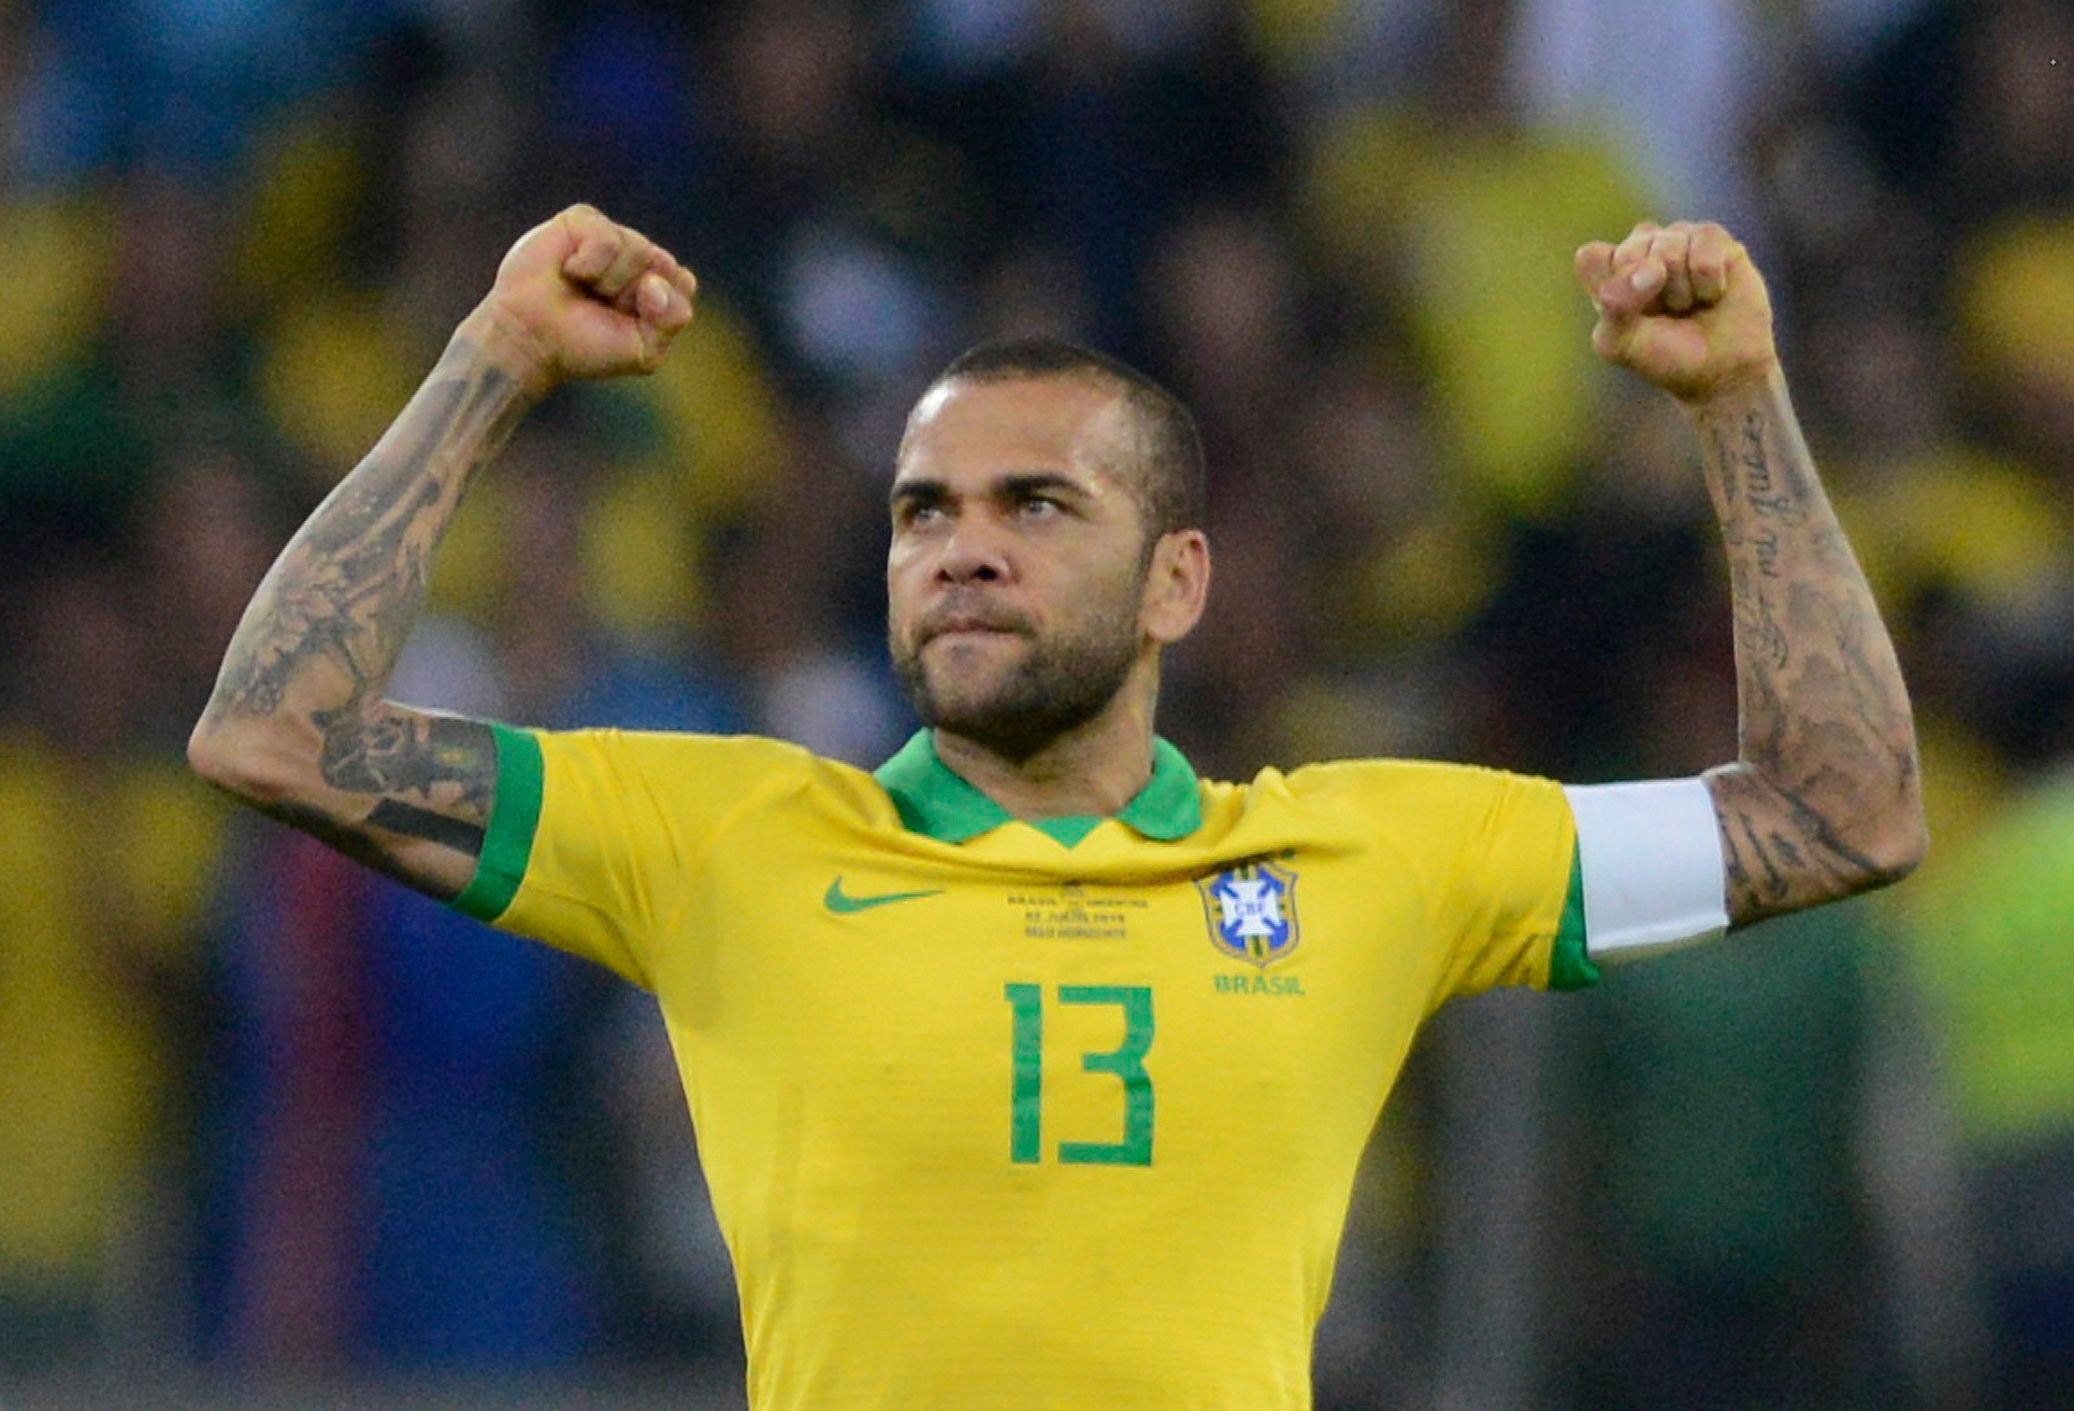 """If you're willing to pay the price, you can do what you want.""- Dani Alves plans to play at 2022 World cup"